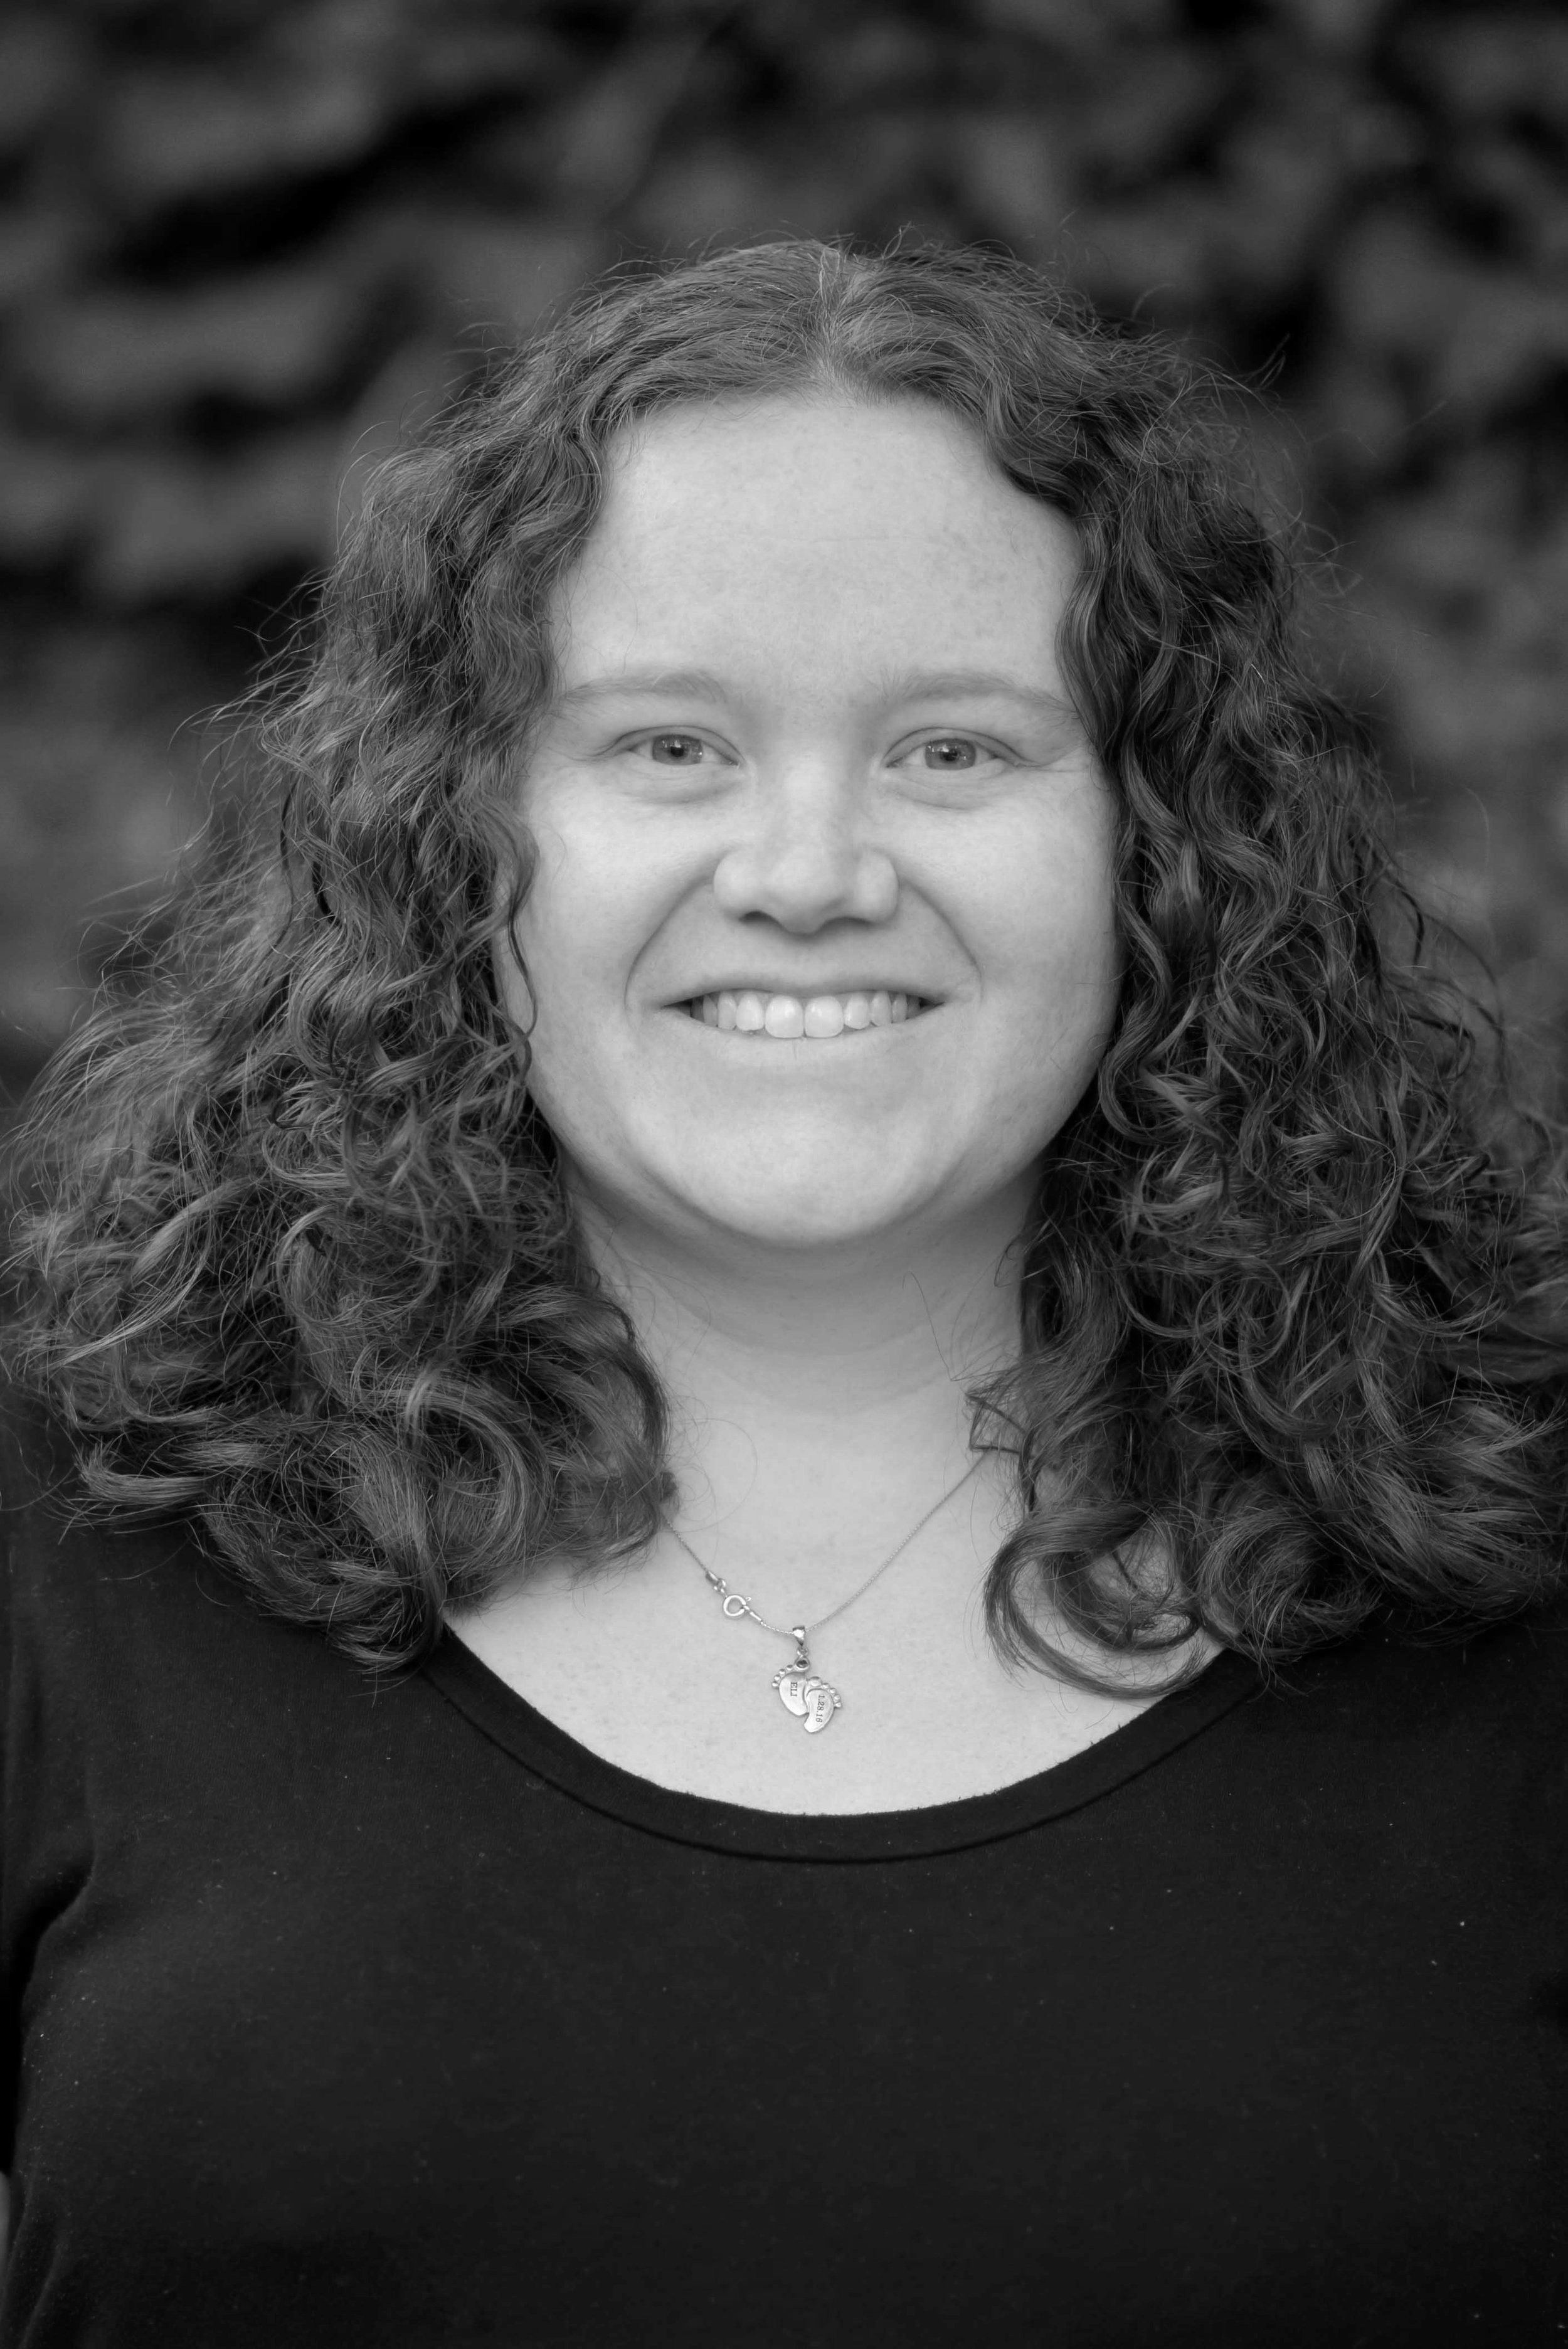 STEPHANIE ZORENSKY   Fun fact:  I collect small elephant figurines and keychains. I have over 200 keychains!   Years at Temple:  6 years